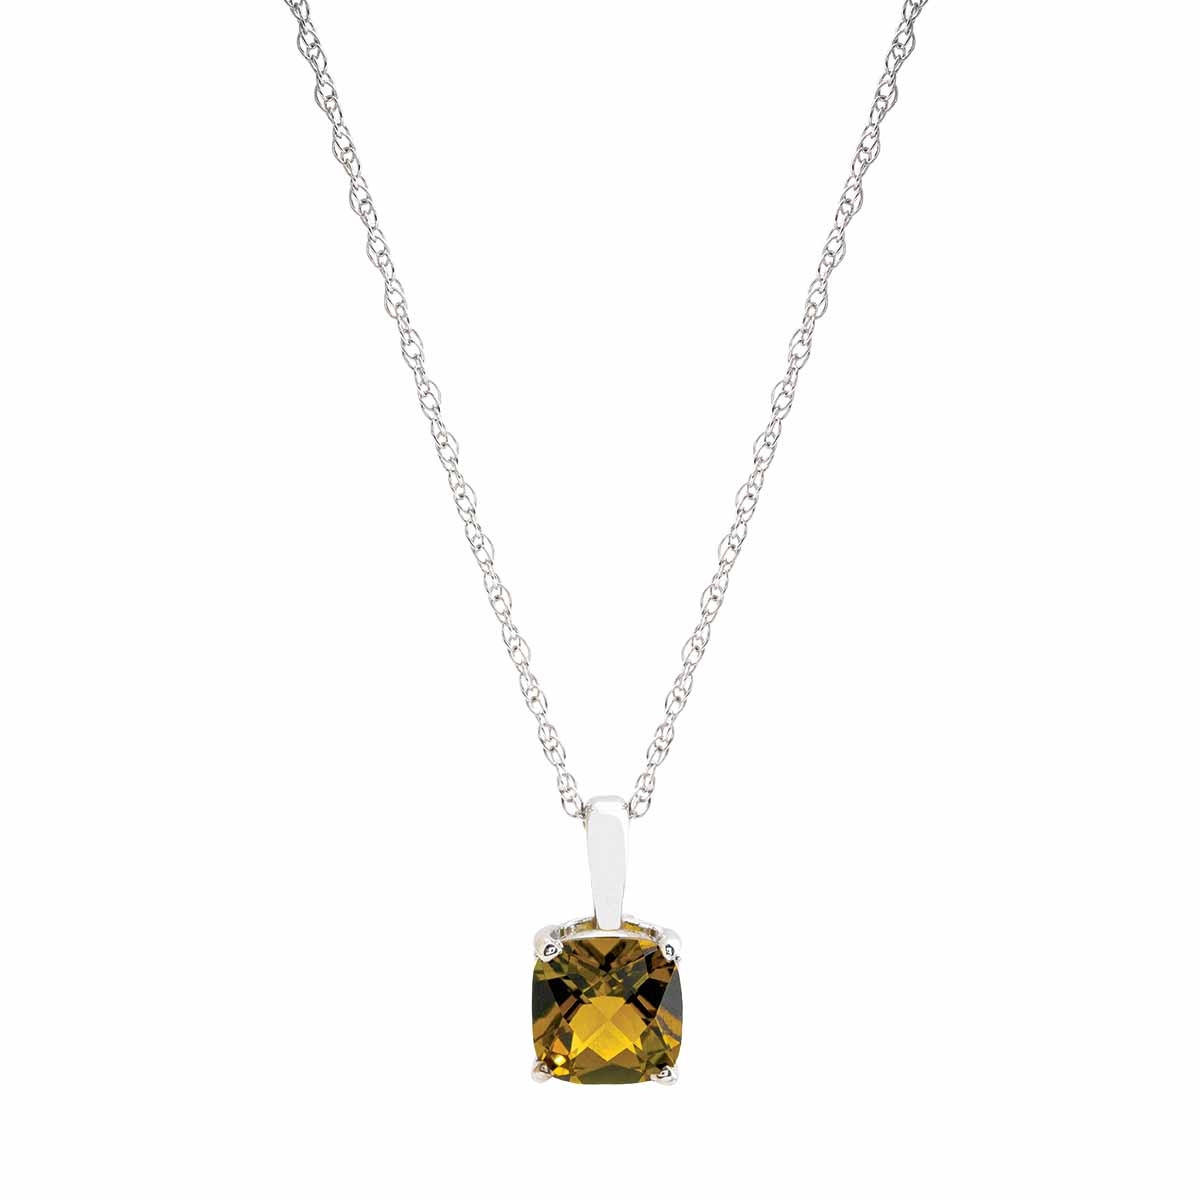 New 1.42 CT Olive Tourmaline Necklace